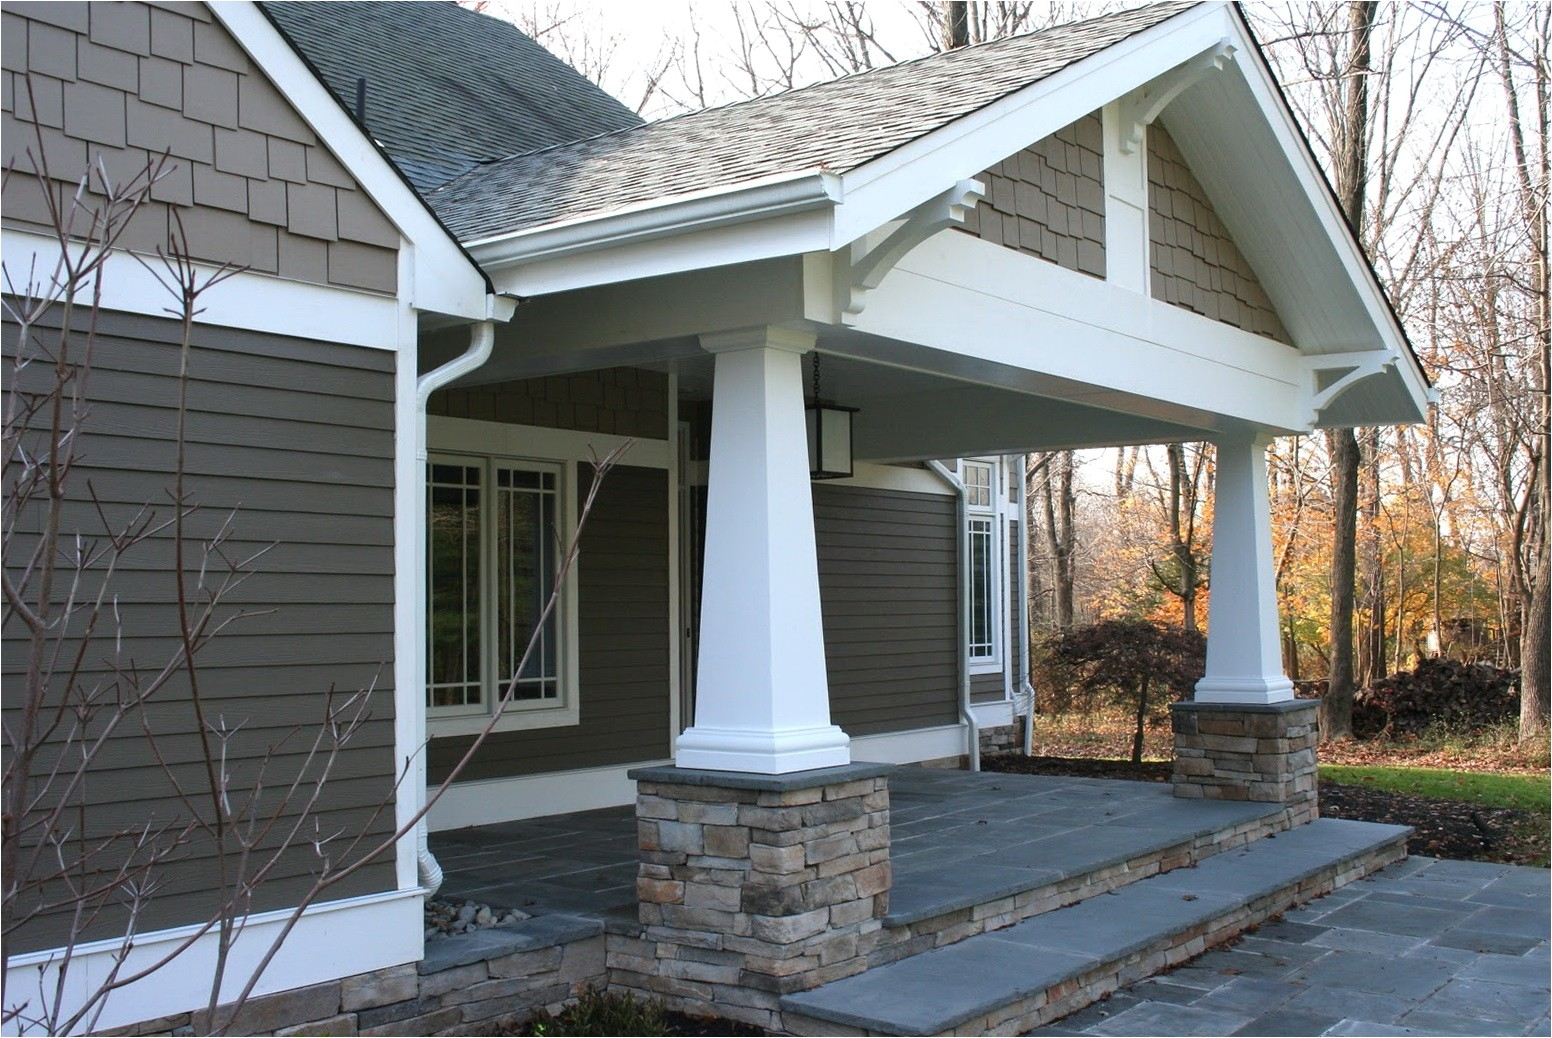 10687 craftsman style front porch columns